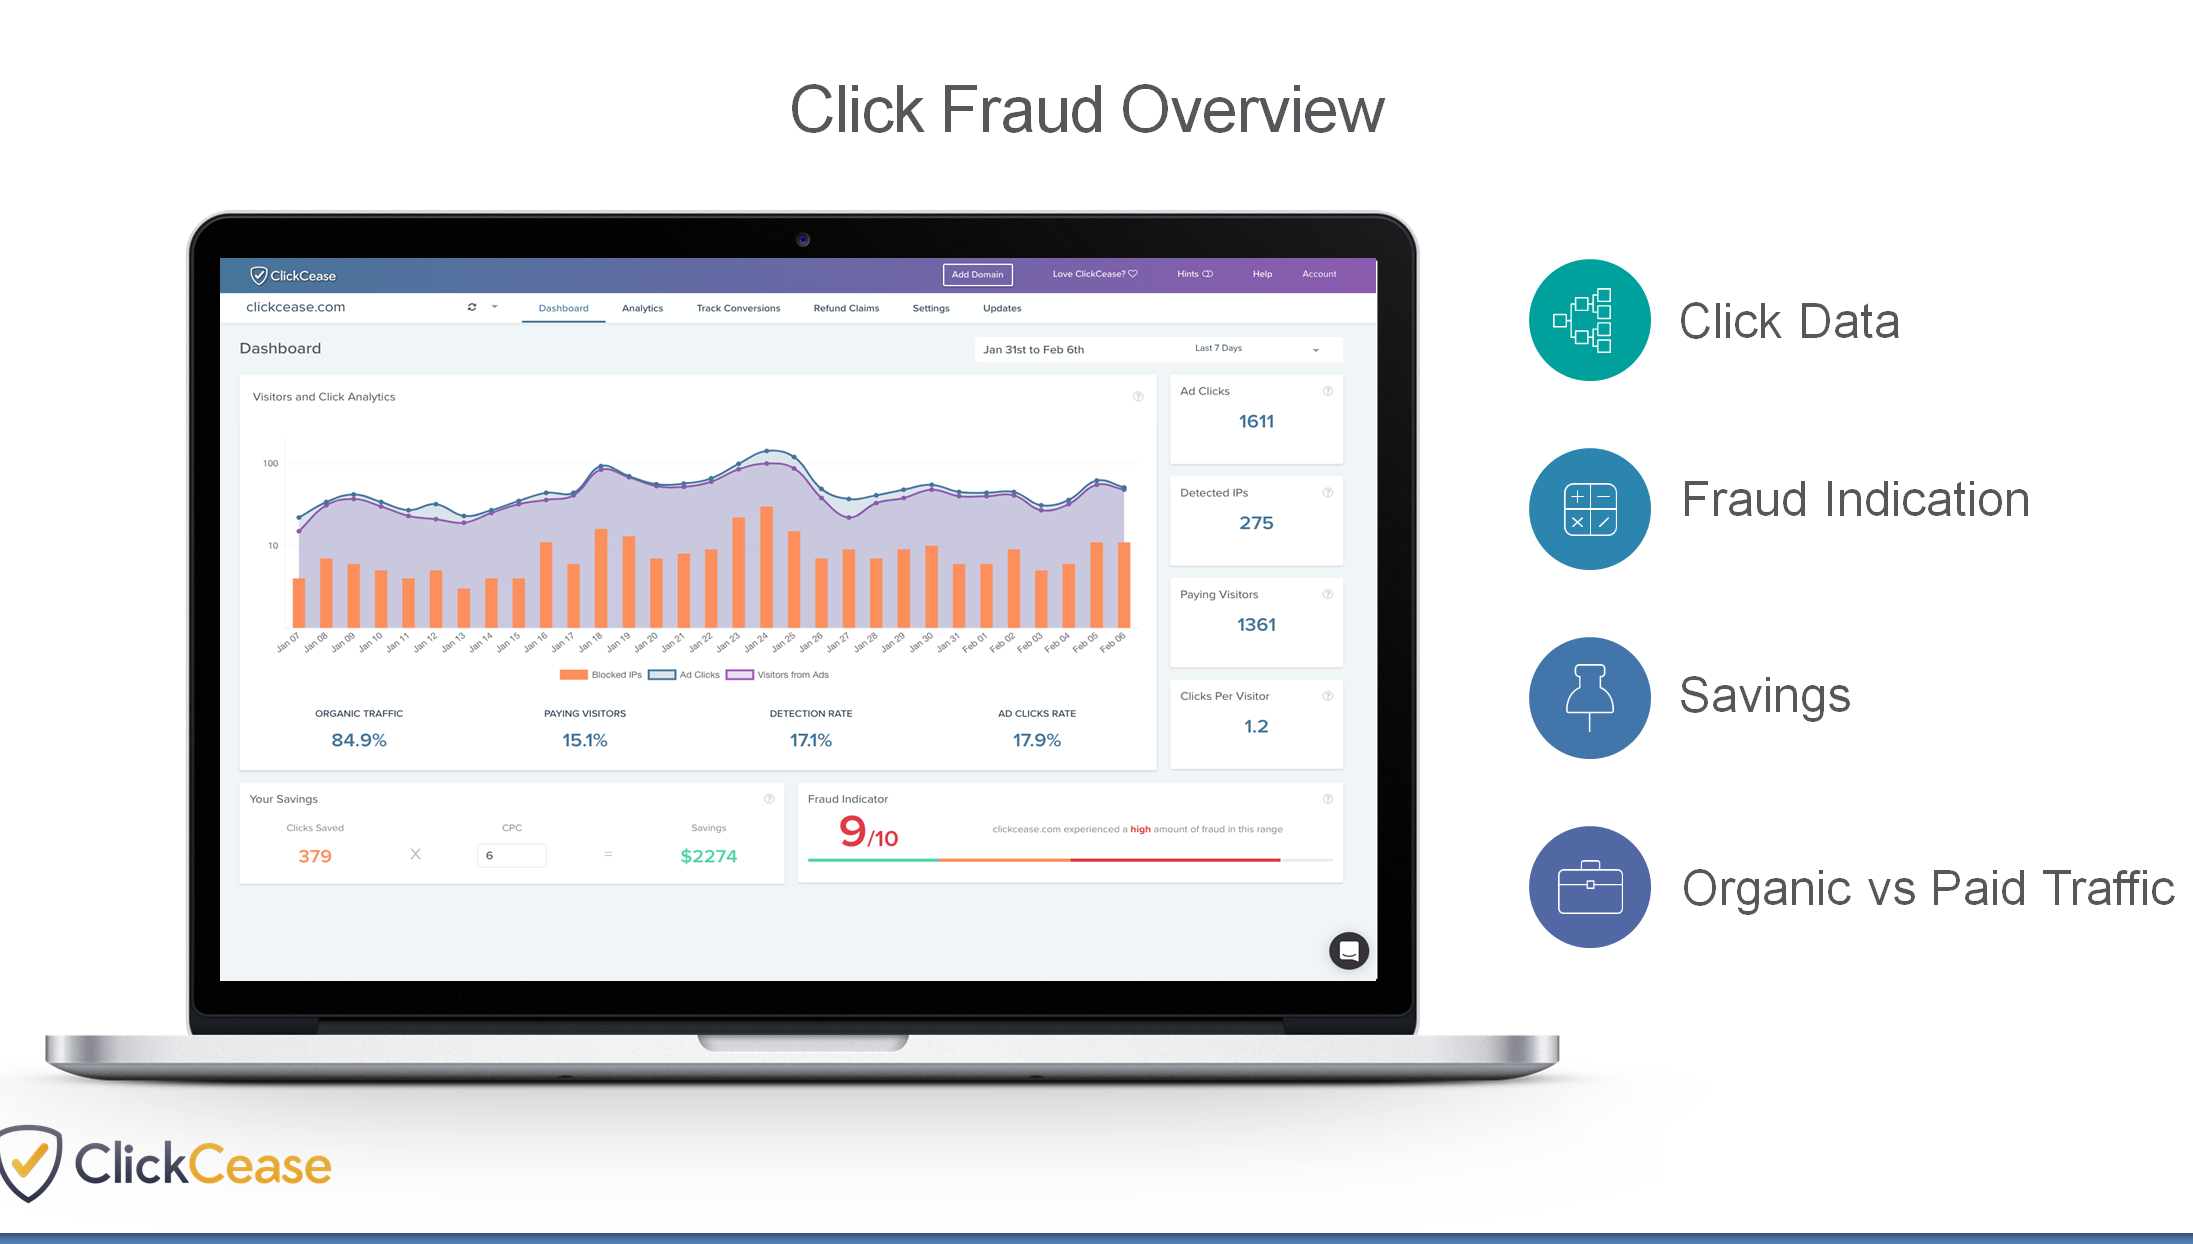 Best Click fraud soiftwares in the market